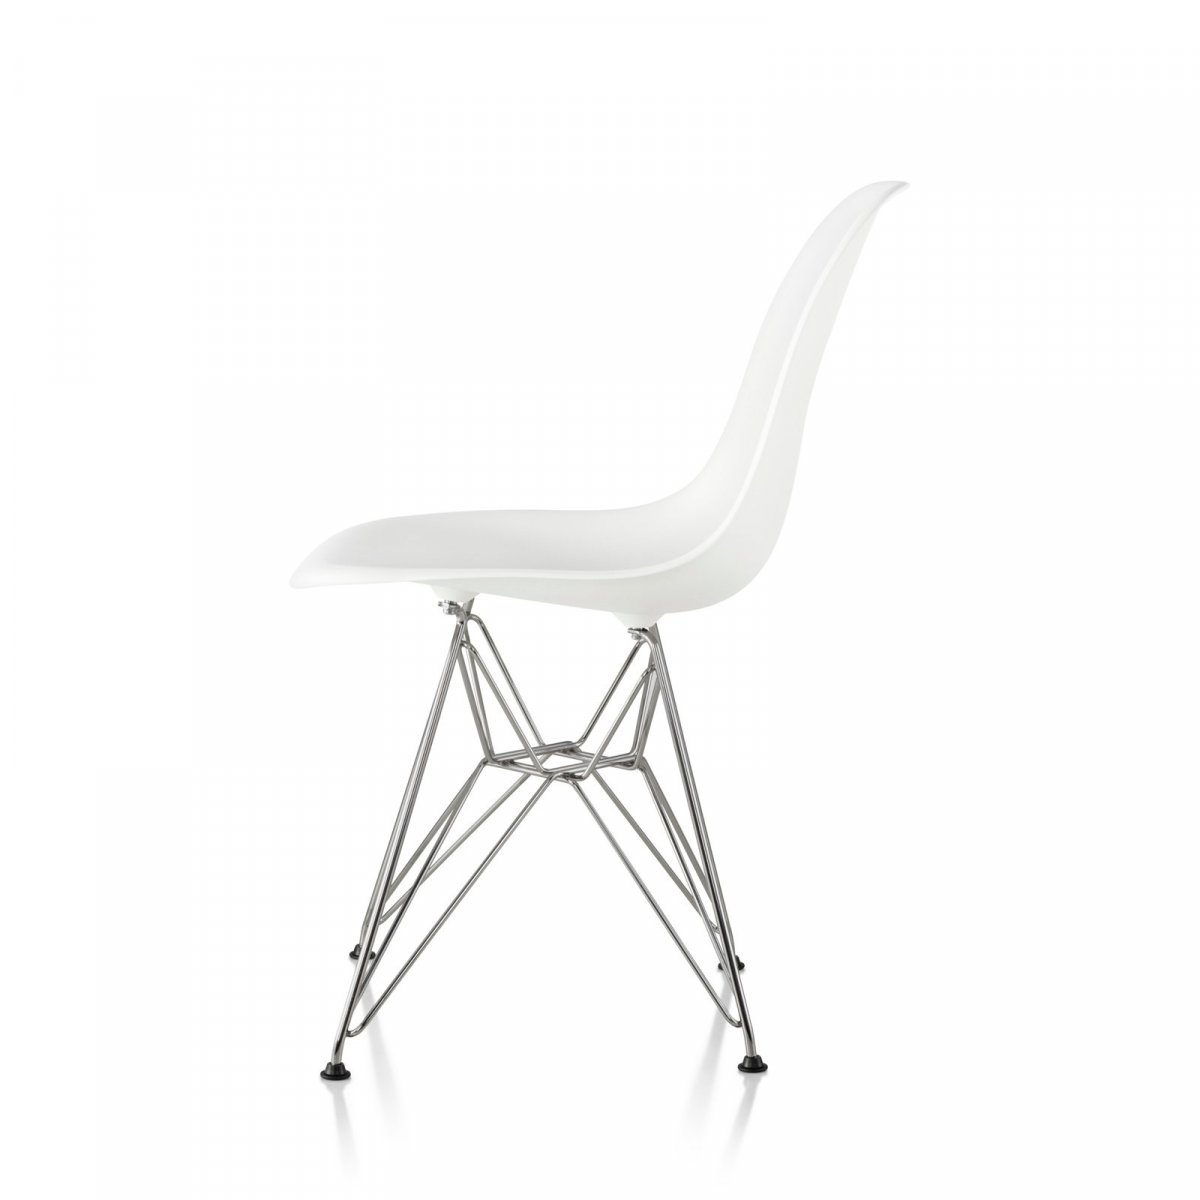 Eames Molded Plastic Side Chair Wire Base, white seat and back, trivalent chrome base, side view.